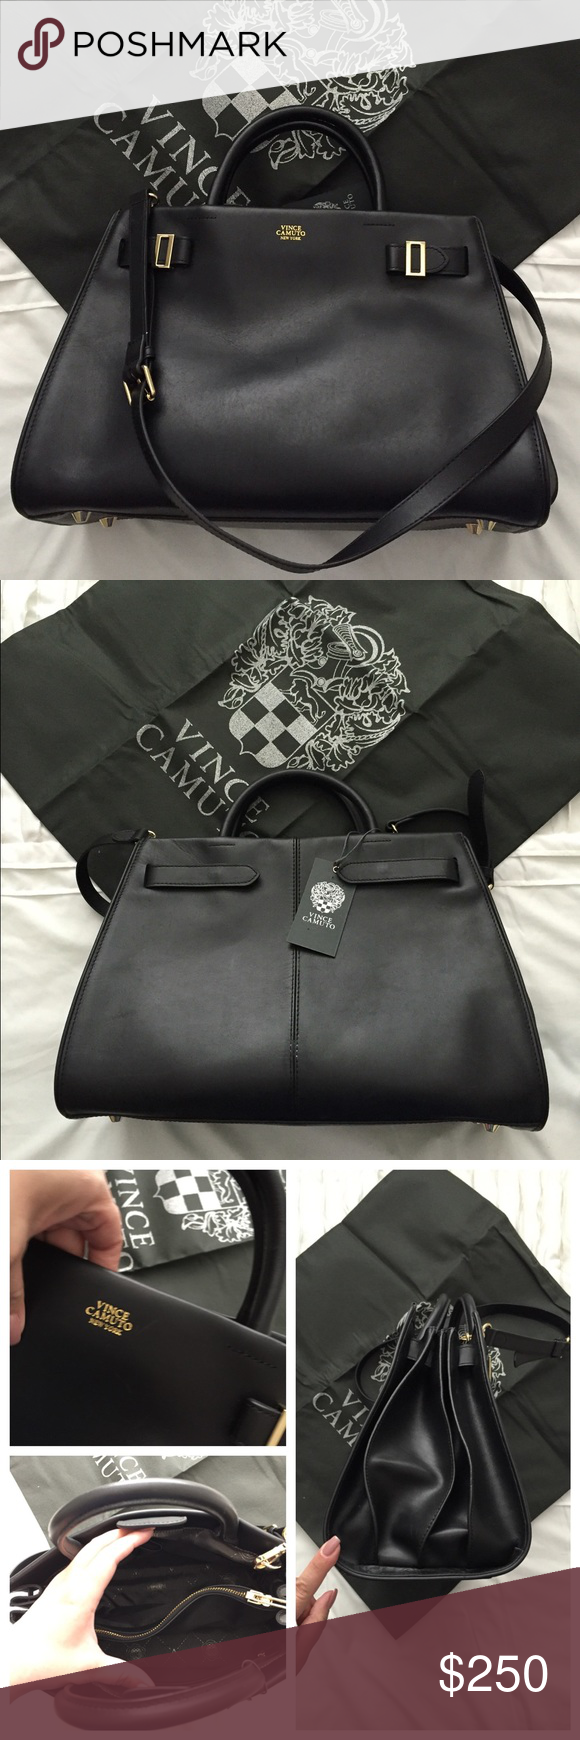 Vince Camuto black Elisa Group Satchel Beautiful and chic Vince Camuto black Elisa Group Satchel. Comes with its dust pouch. New with tags. Sold out everywhere! All leather with gold hardware. Vince Camuto Bags Satchels